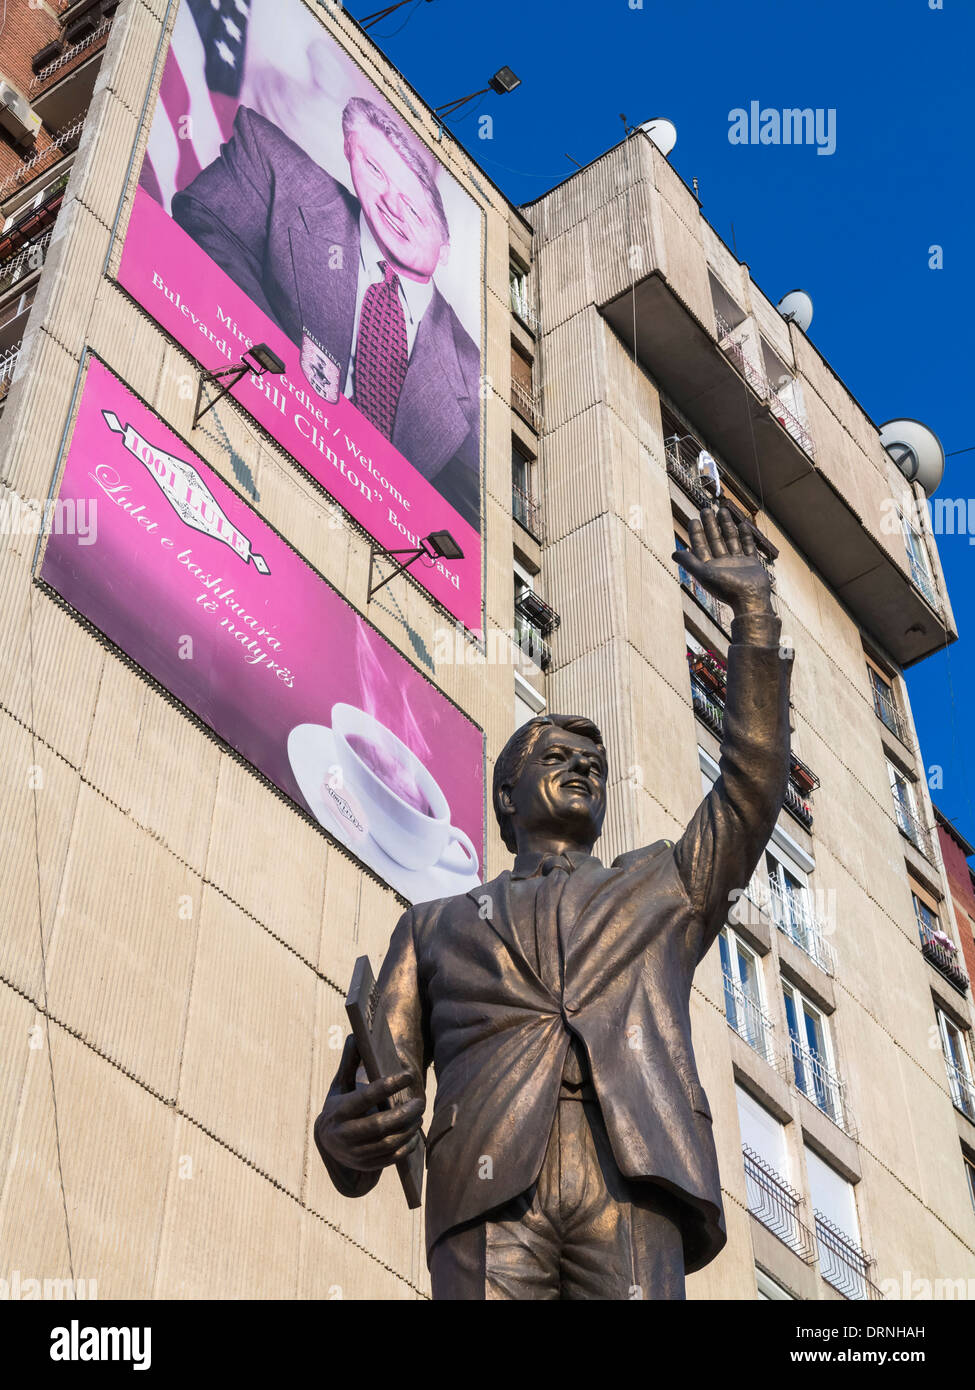 Bill Clinton's statue and billboard, Pristina, Kosovo, Europe - holding the 1999 agreement for US troops to enter Kosovo - Stock Image